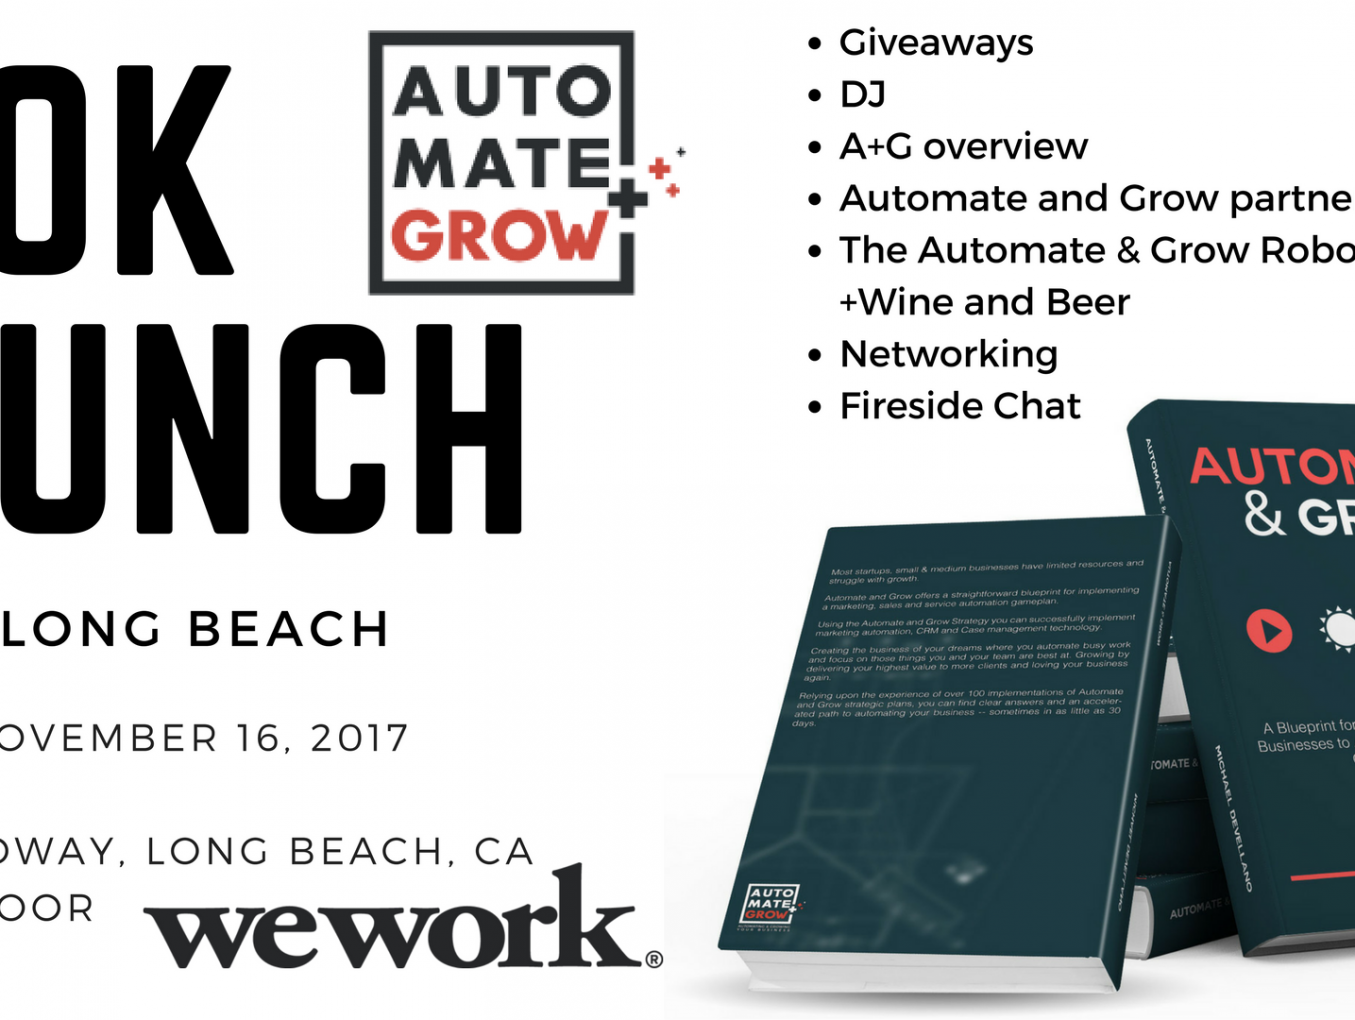 WeWork Long Beach | Beer & Pitches Happy Hour: Automate & Grow Book Launch Fireside Chat